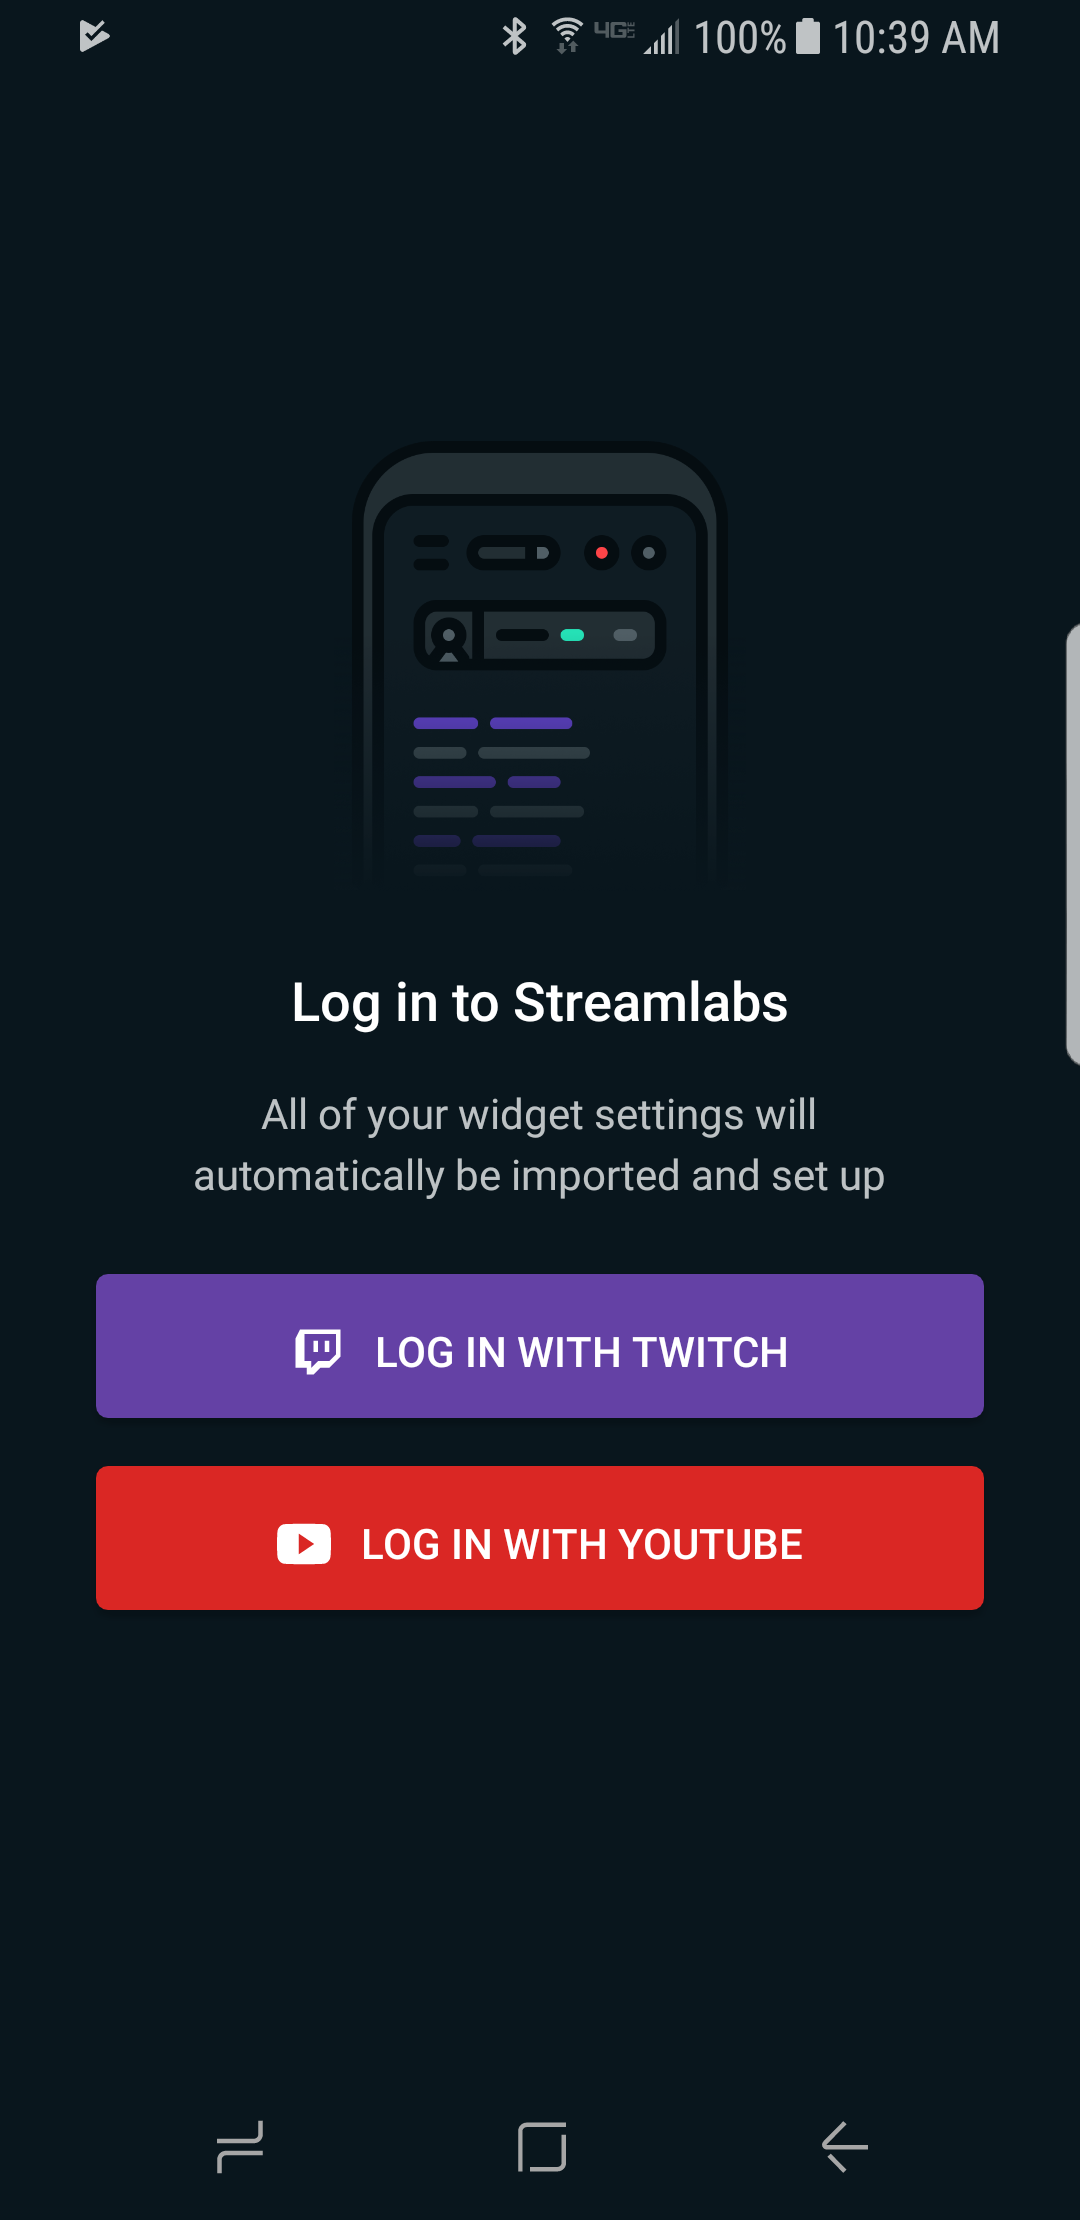 Streamlabs Releases First Mobile Live Streaming App